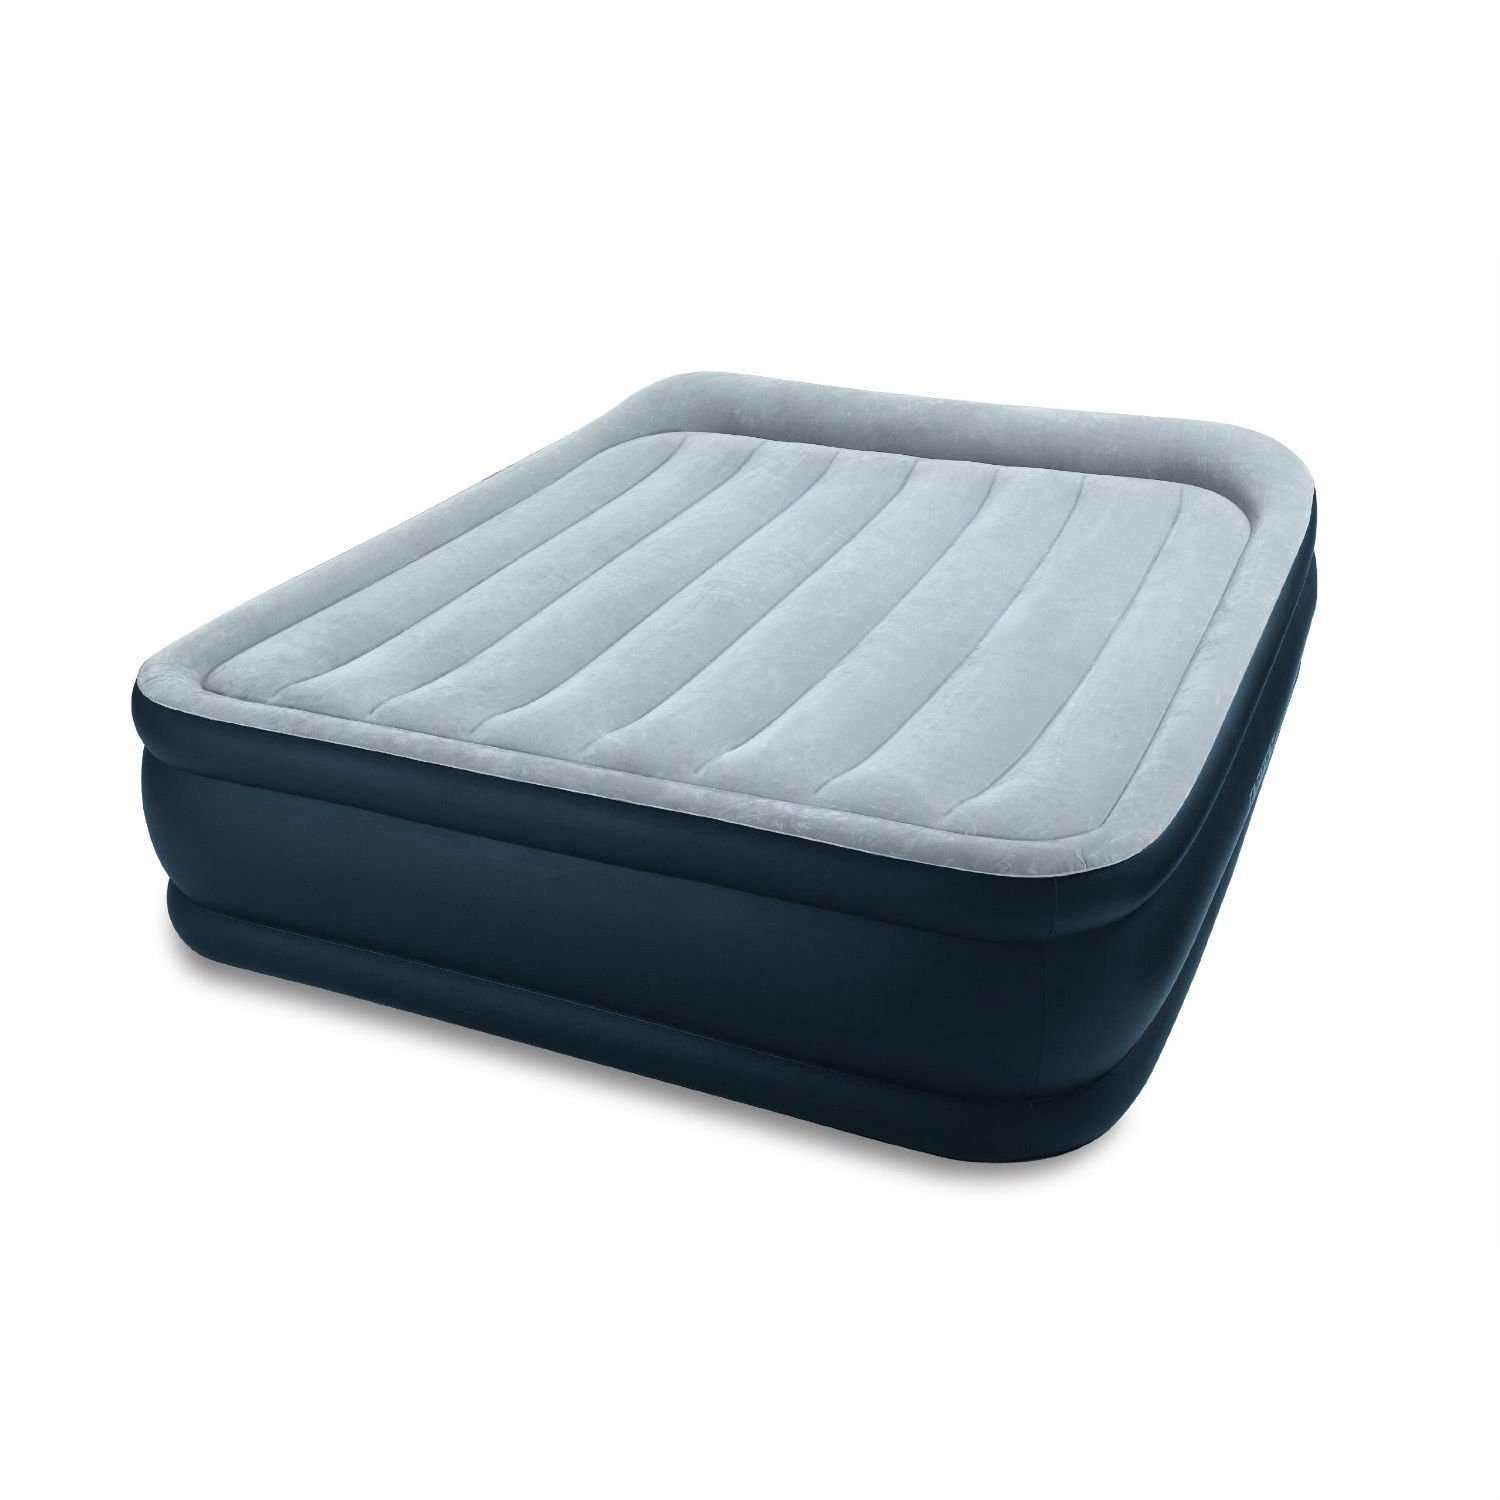 Queen Size Raised Airbed Air Mattress With Built In Pillows And